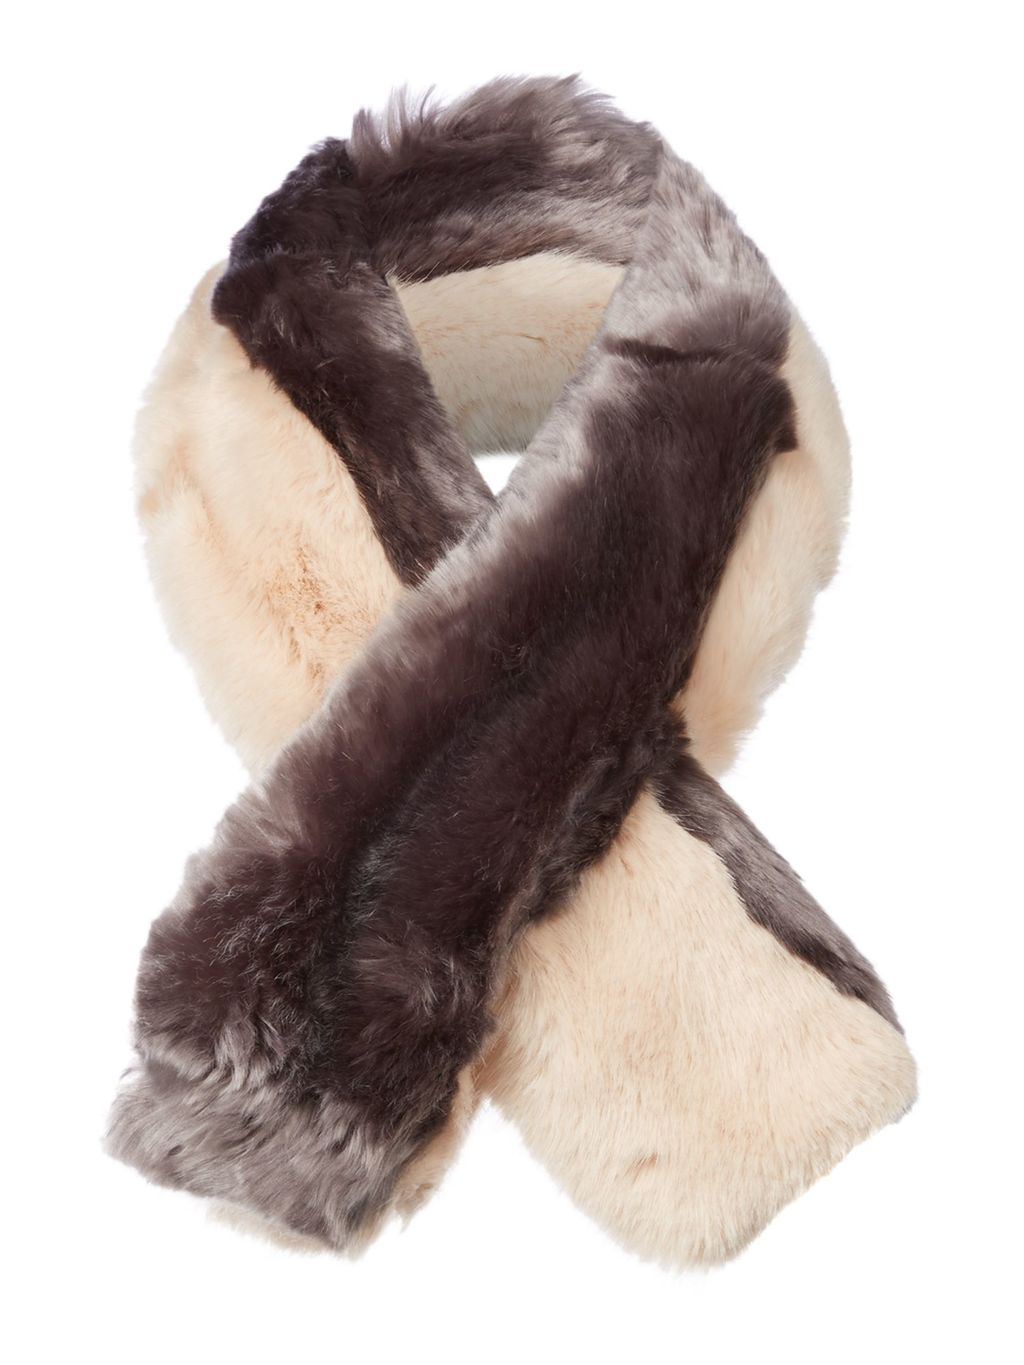 Wyn Double Stripe Faux Fur Scarf, Purple - secondary colour: ivory/cream; predominant colour: purple; occasions: casual, creative work; type of pattern: light; size: standard; material: fur; pattern: plain; style: stole; season: a/w 2016; wardrobe: highlight